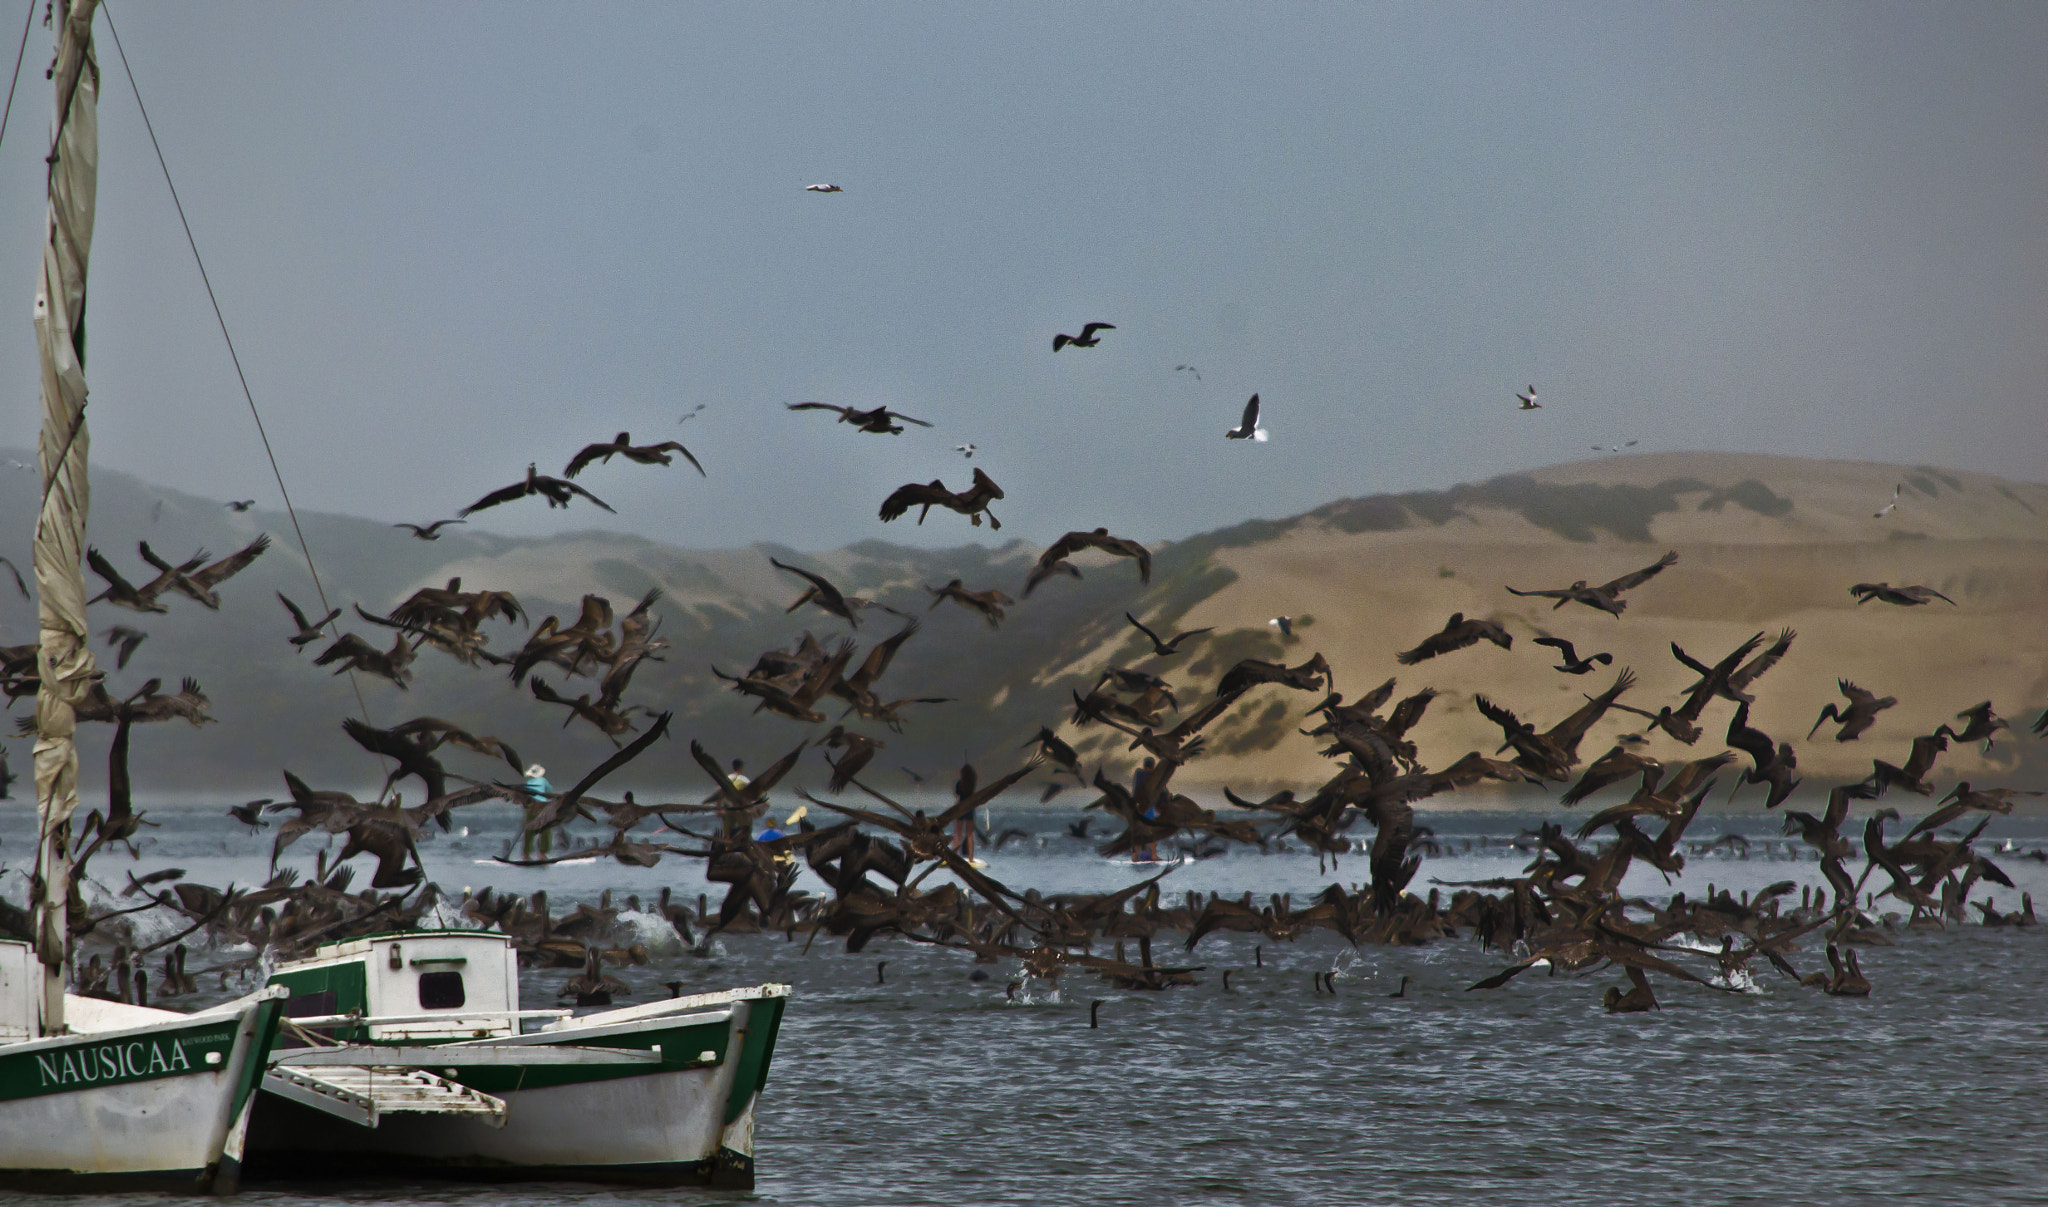 Photograph Boat n Birds by Michael Sheltzer on 500px